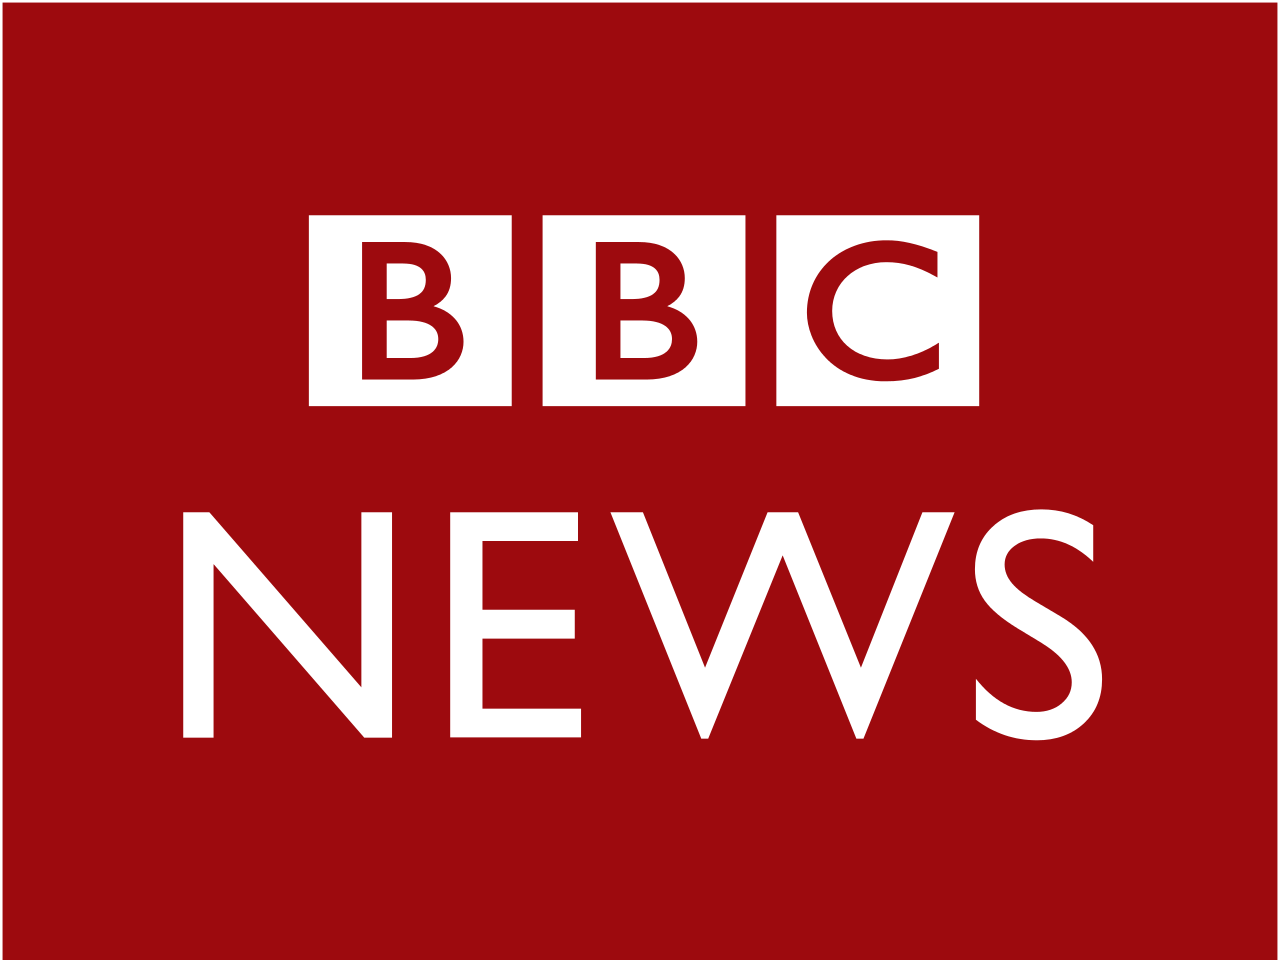 BBC NEWS LOGO from Wikipedia - ABA does not claim to own this logo